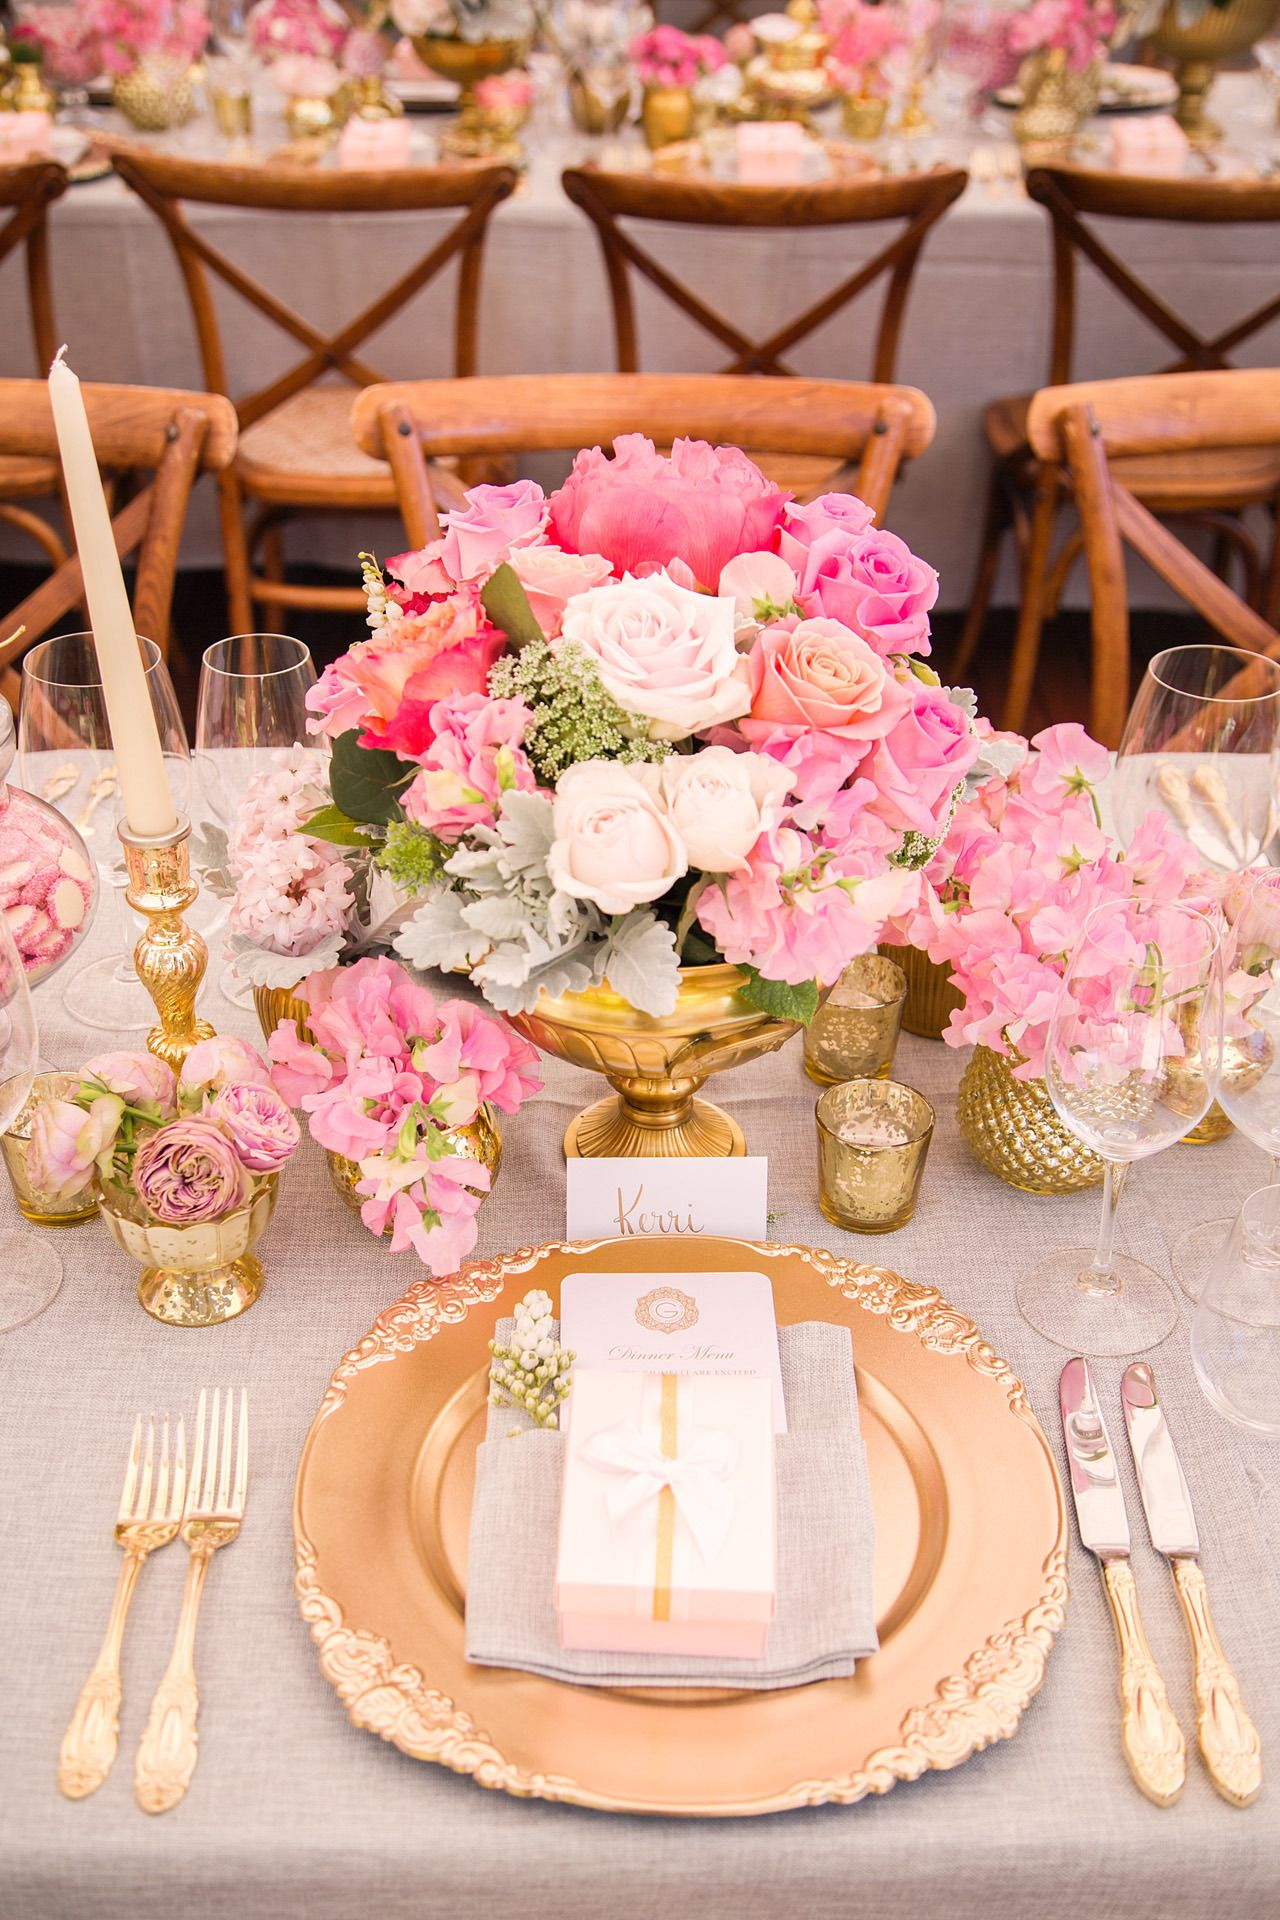 Glamorous Pink & Ivory Country Wedding | Photography studios, Studio ...